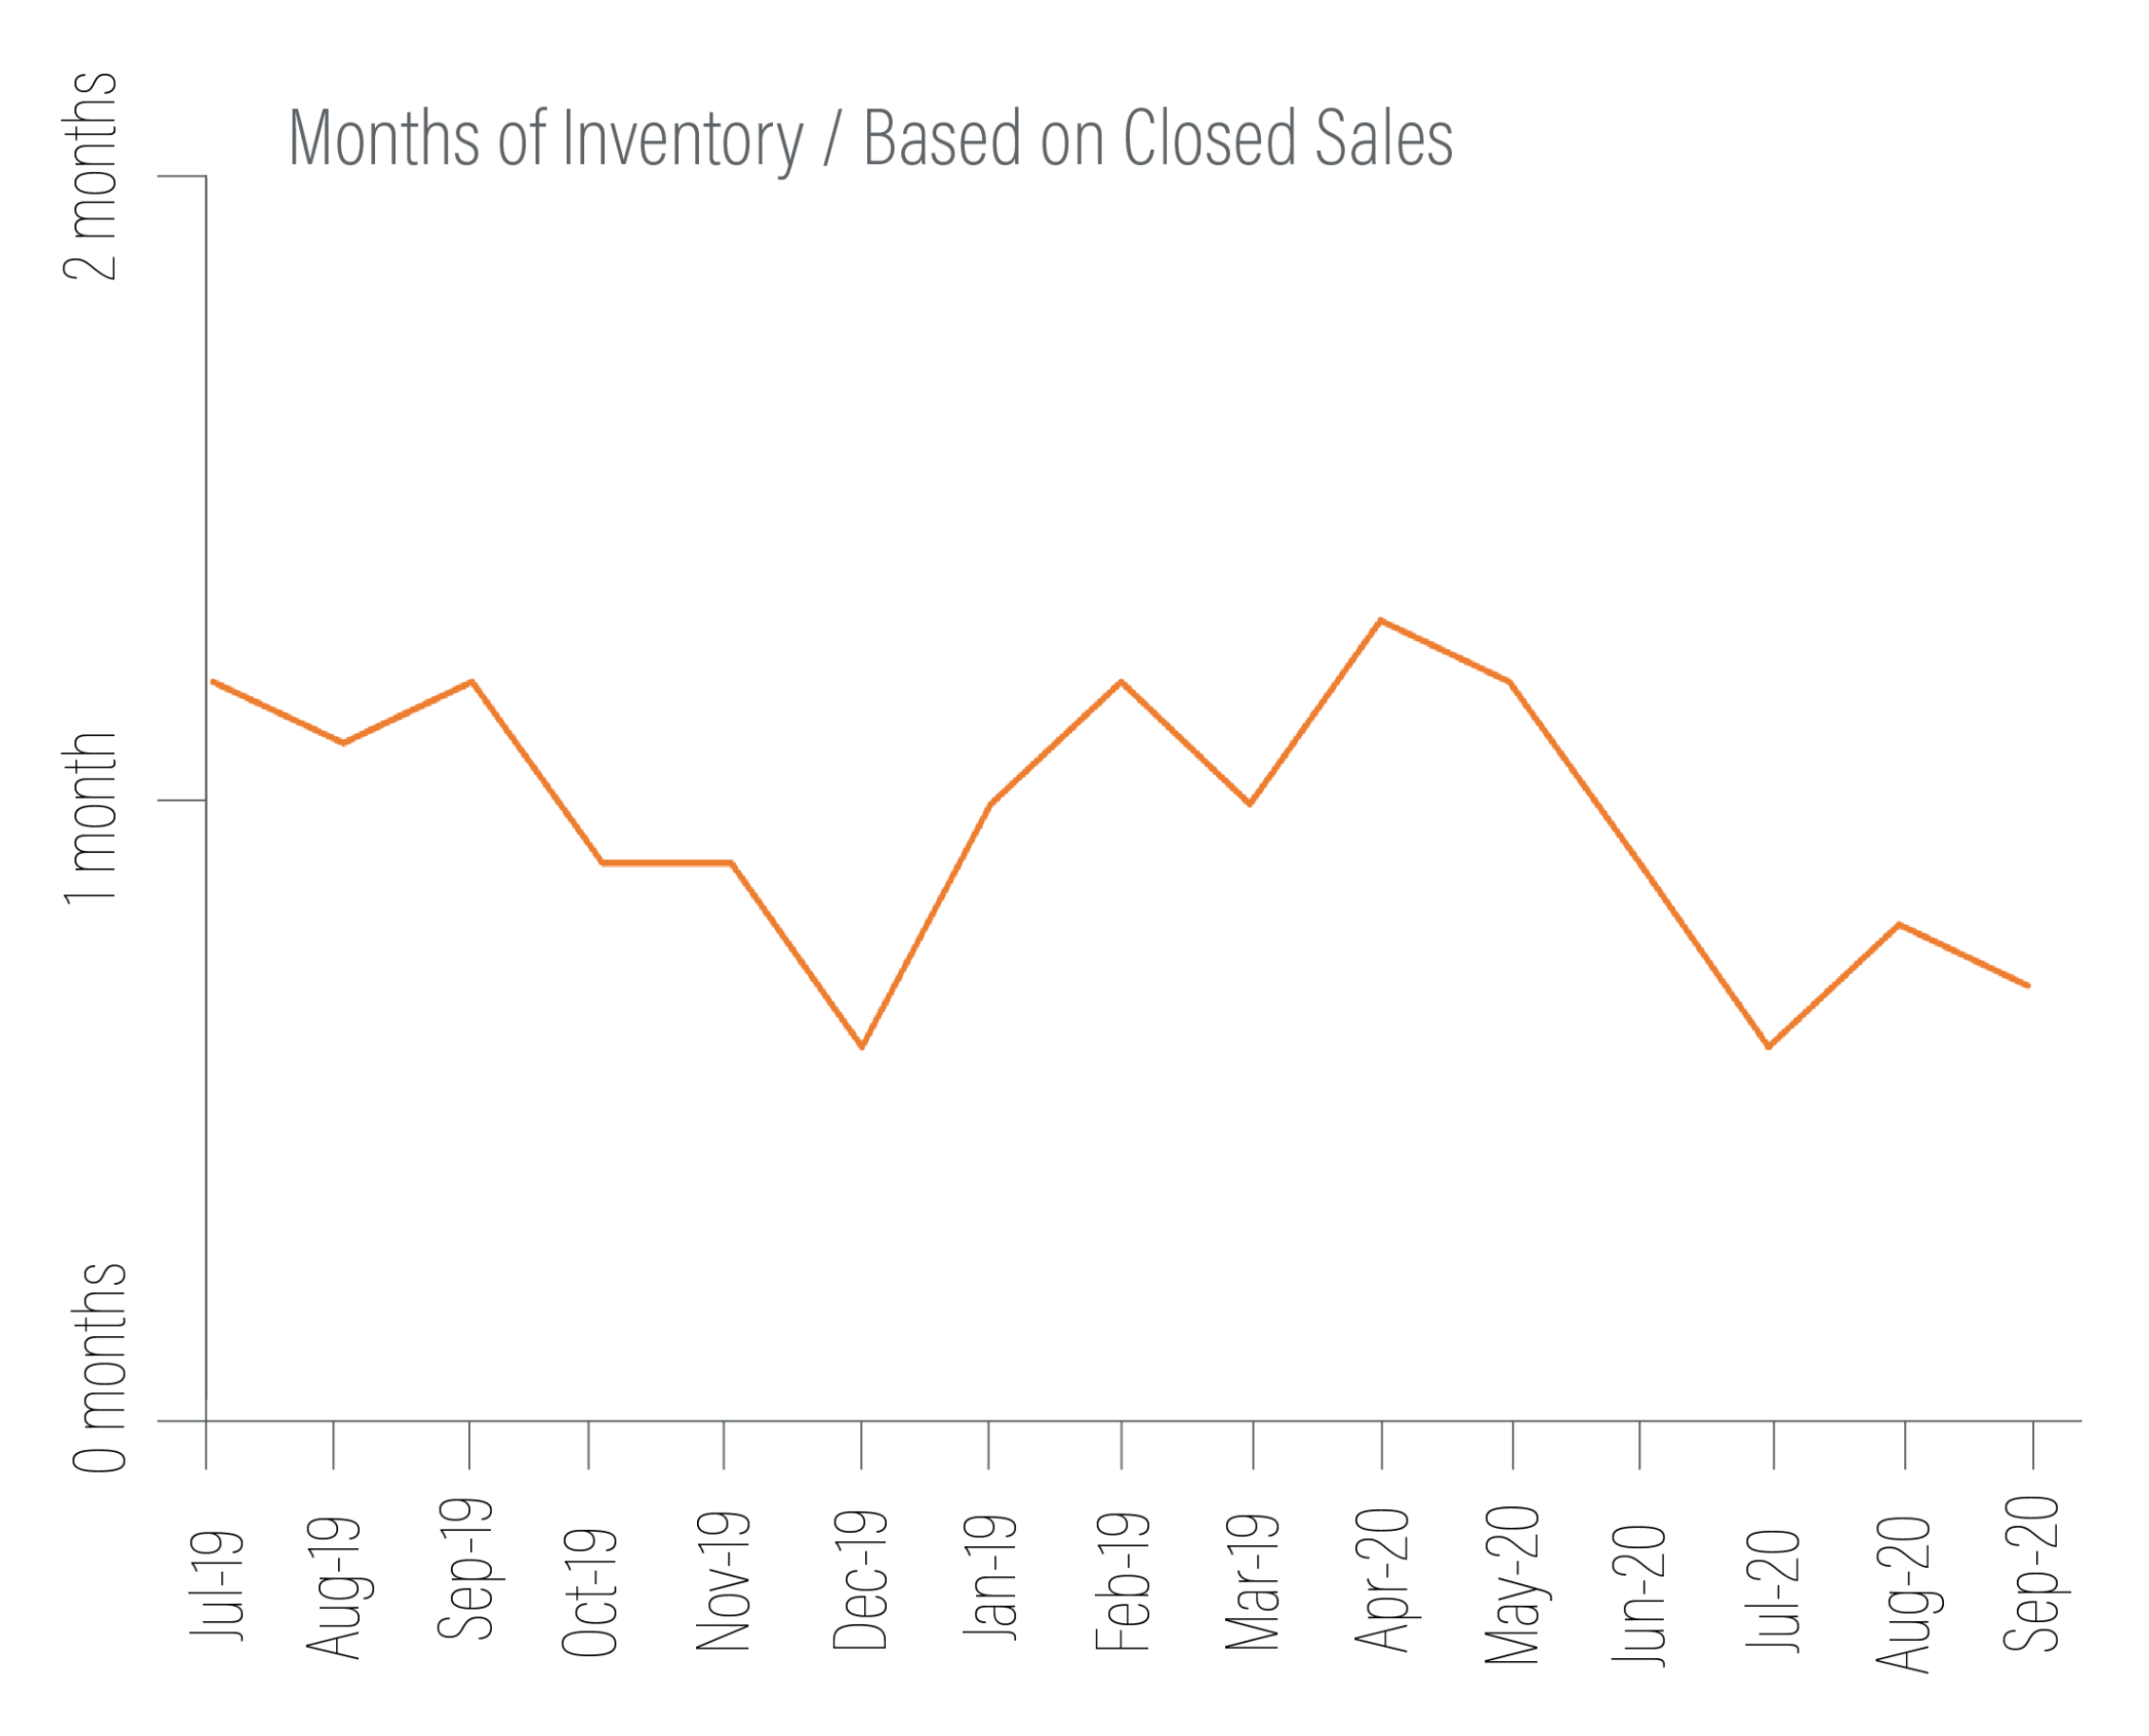 south kitsap months inventory graph q3